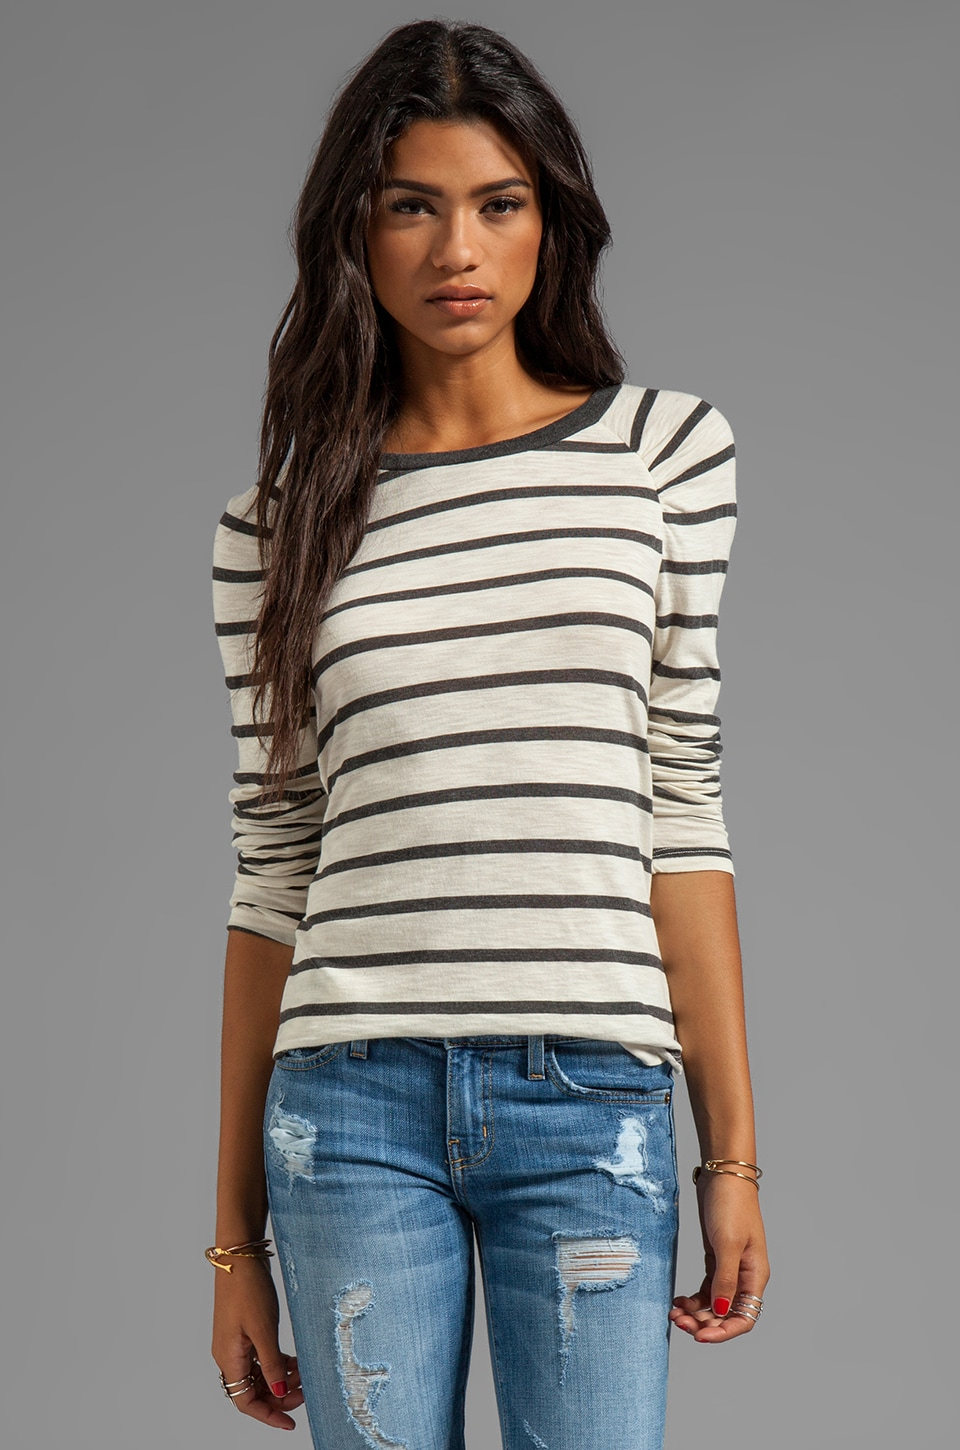 Velvet by Graham & Spencer Verna Charcoal Slub Stripe Long Sleeve in Cream